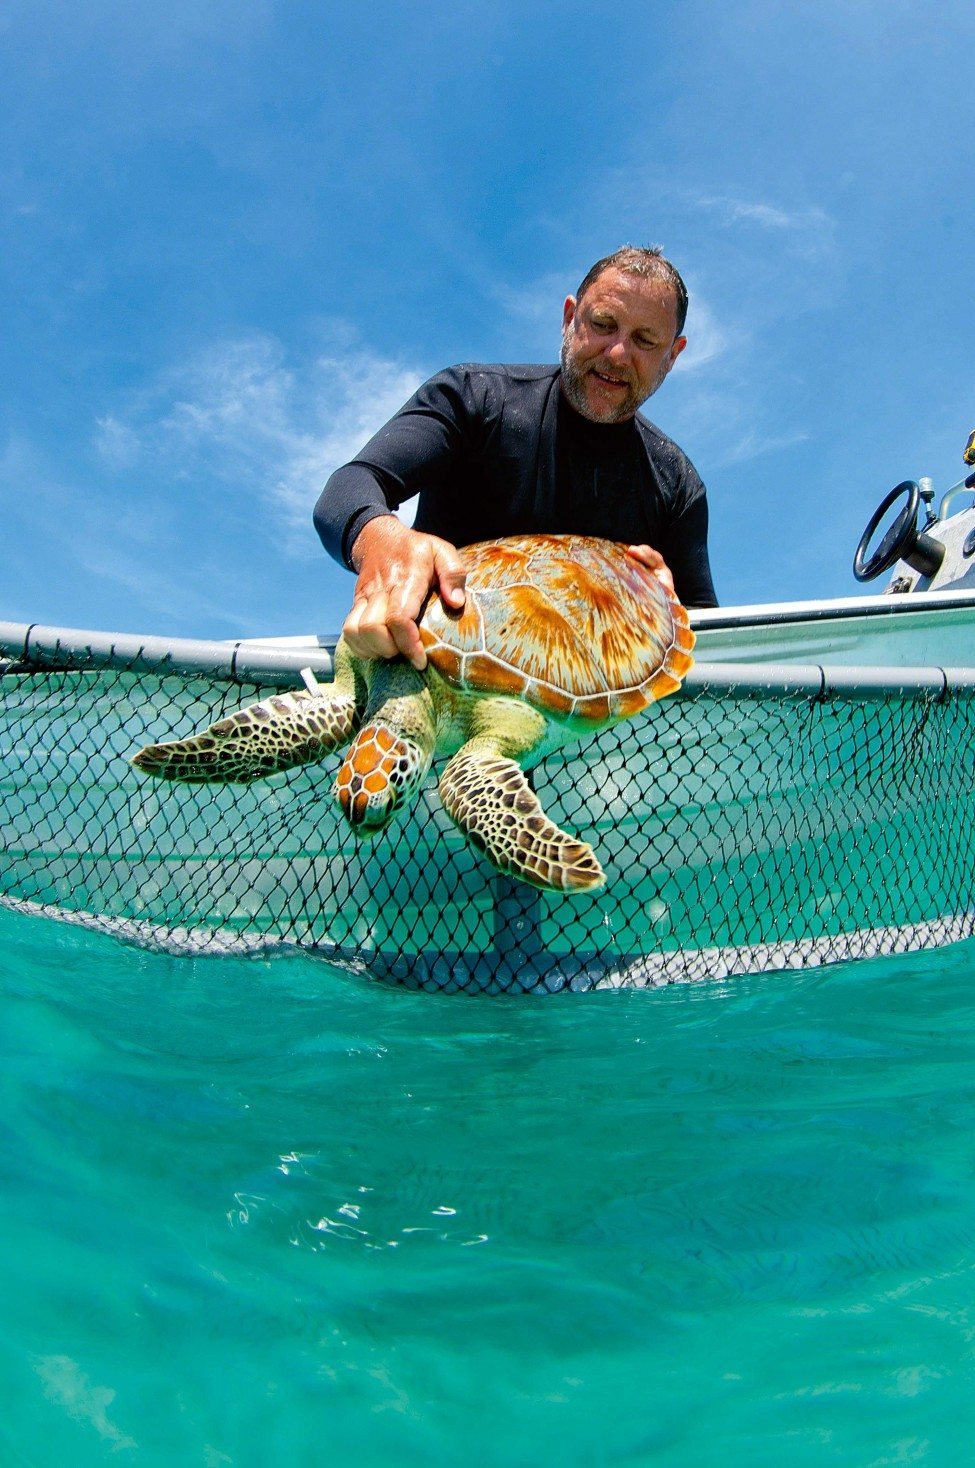 For the past two decades, Nick Pilcher has been working with turtles in Malaysia, encouraging fishers to equip their nets with Turtle Excluder Devices that will help them to avoid catching these gentle marine reptiles.<br /> Photo by Gilbert Woolley